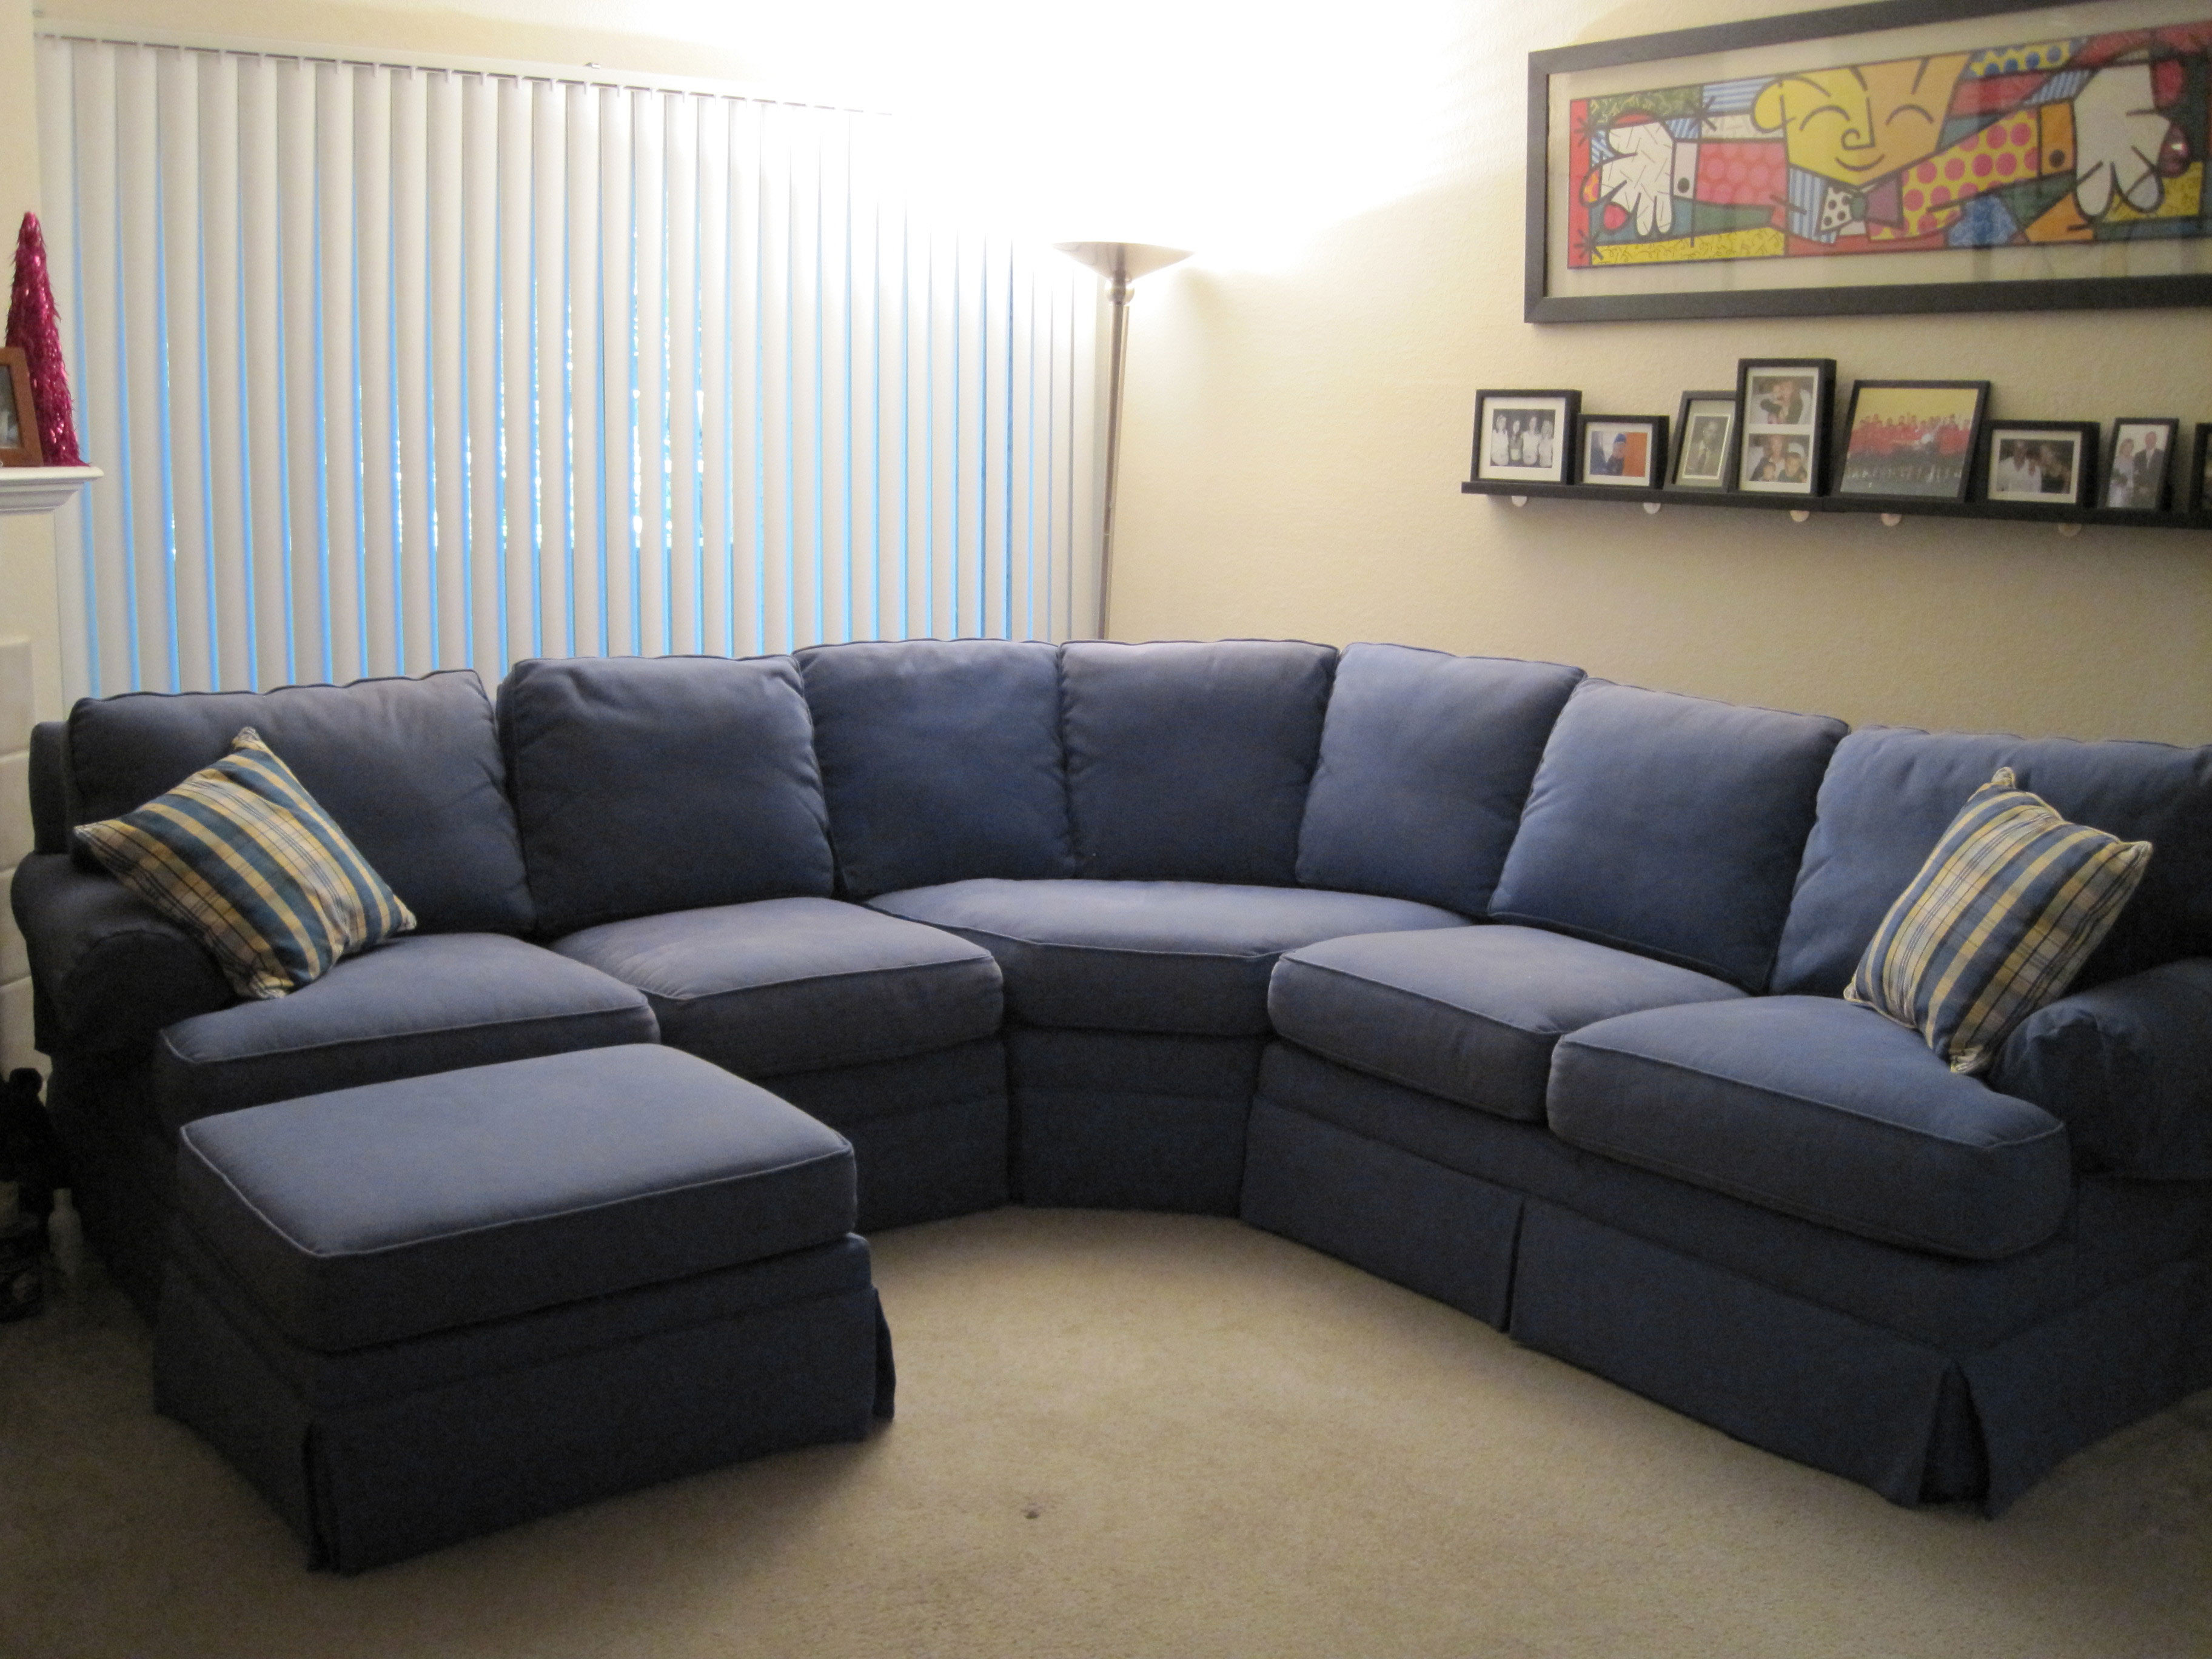 Living rooms with sectionals sofa for small living room roy home design - Living room design for small spaces image ...